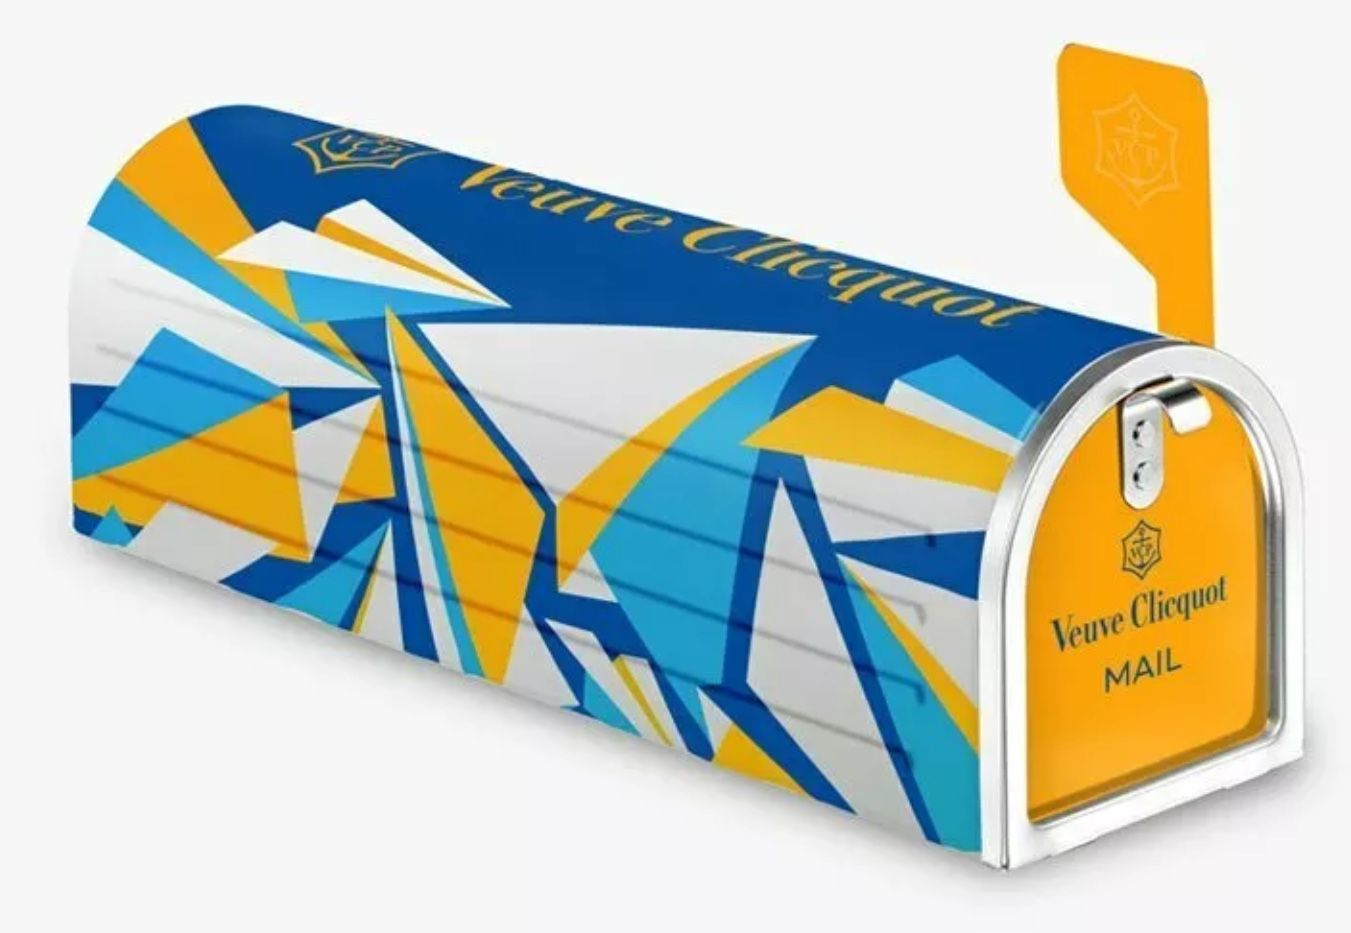 Pin By Oceanic House On Veuve Clicquot In With